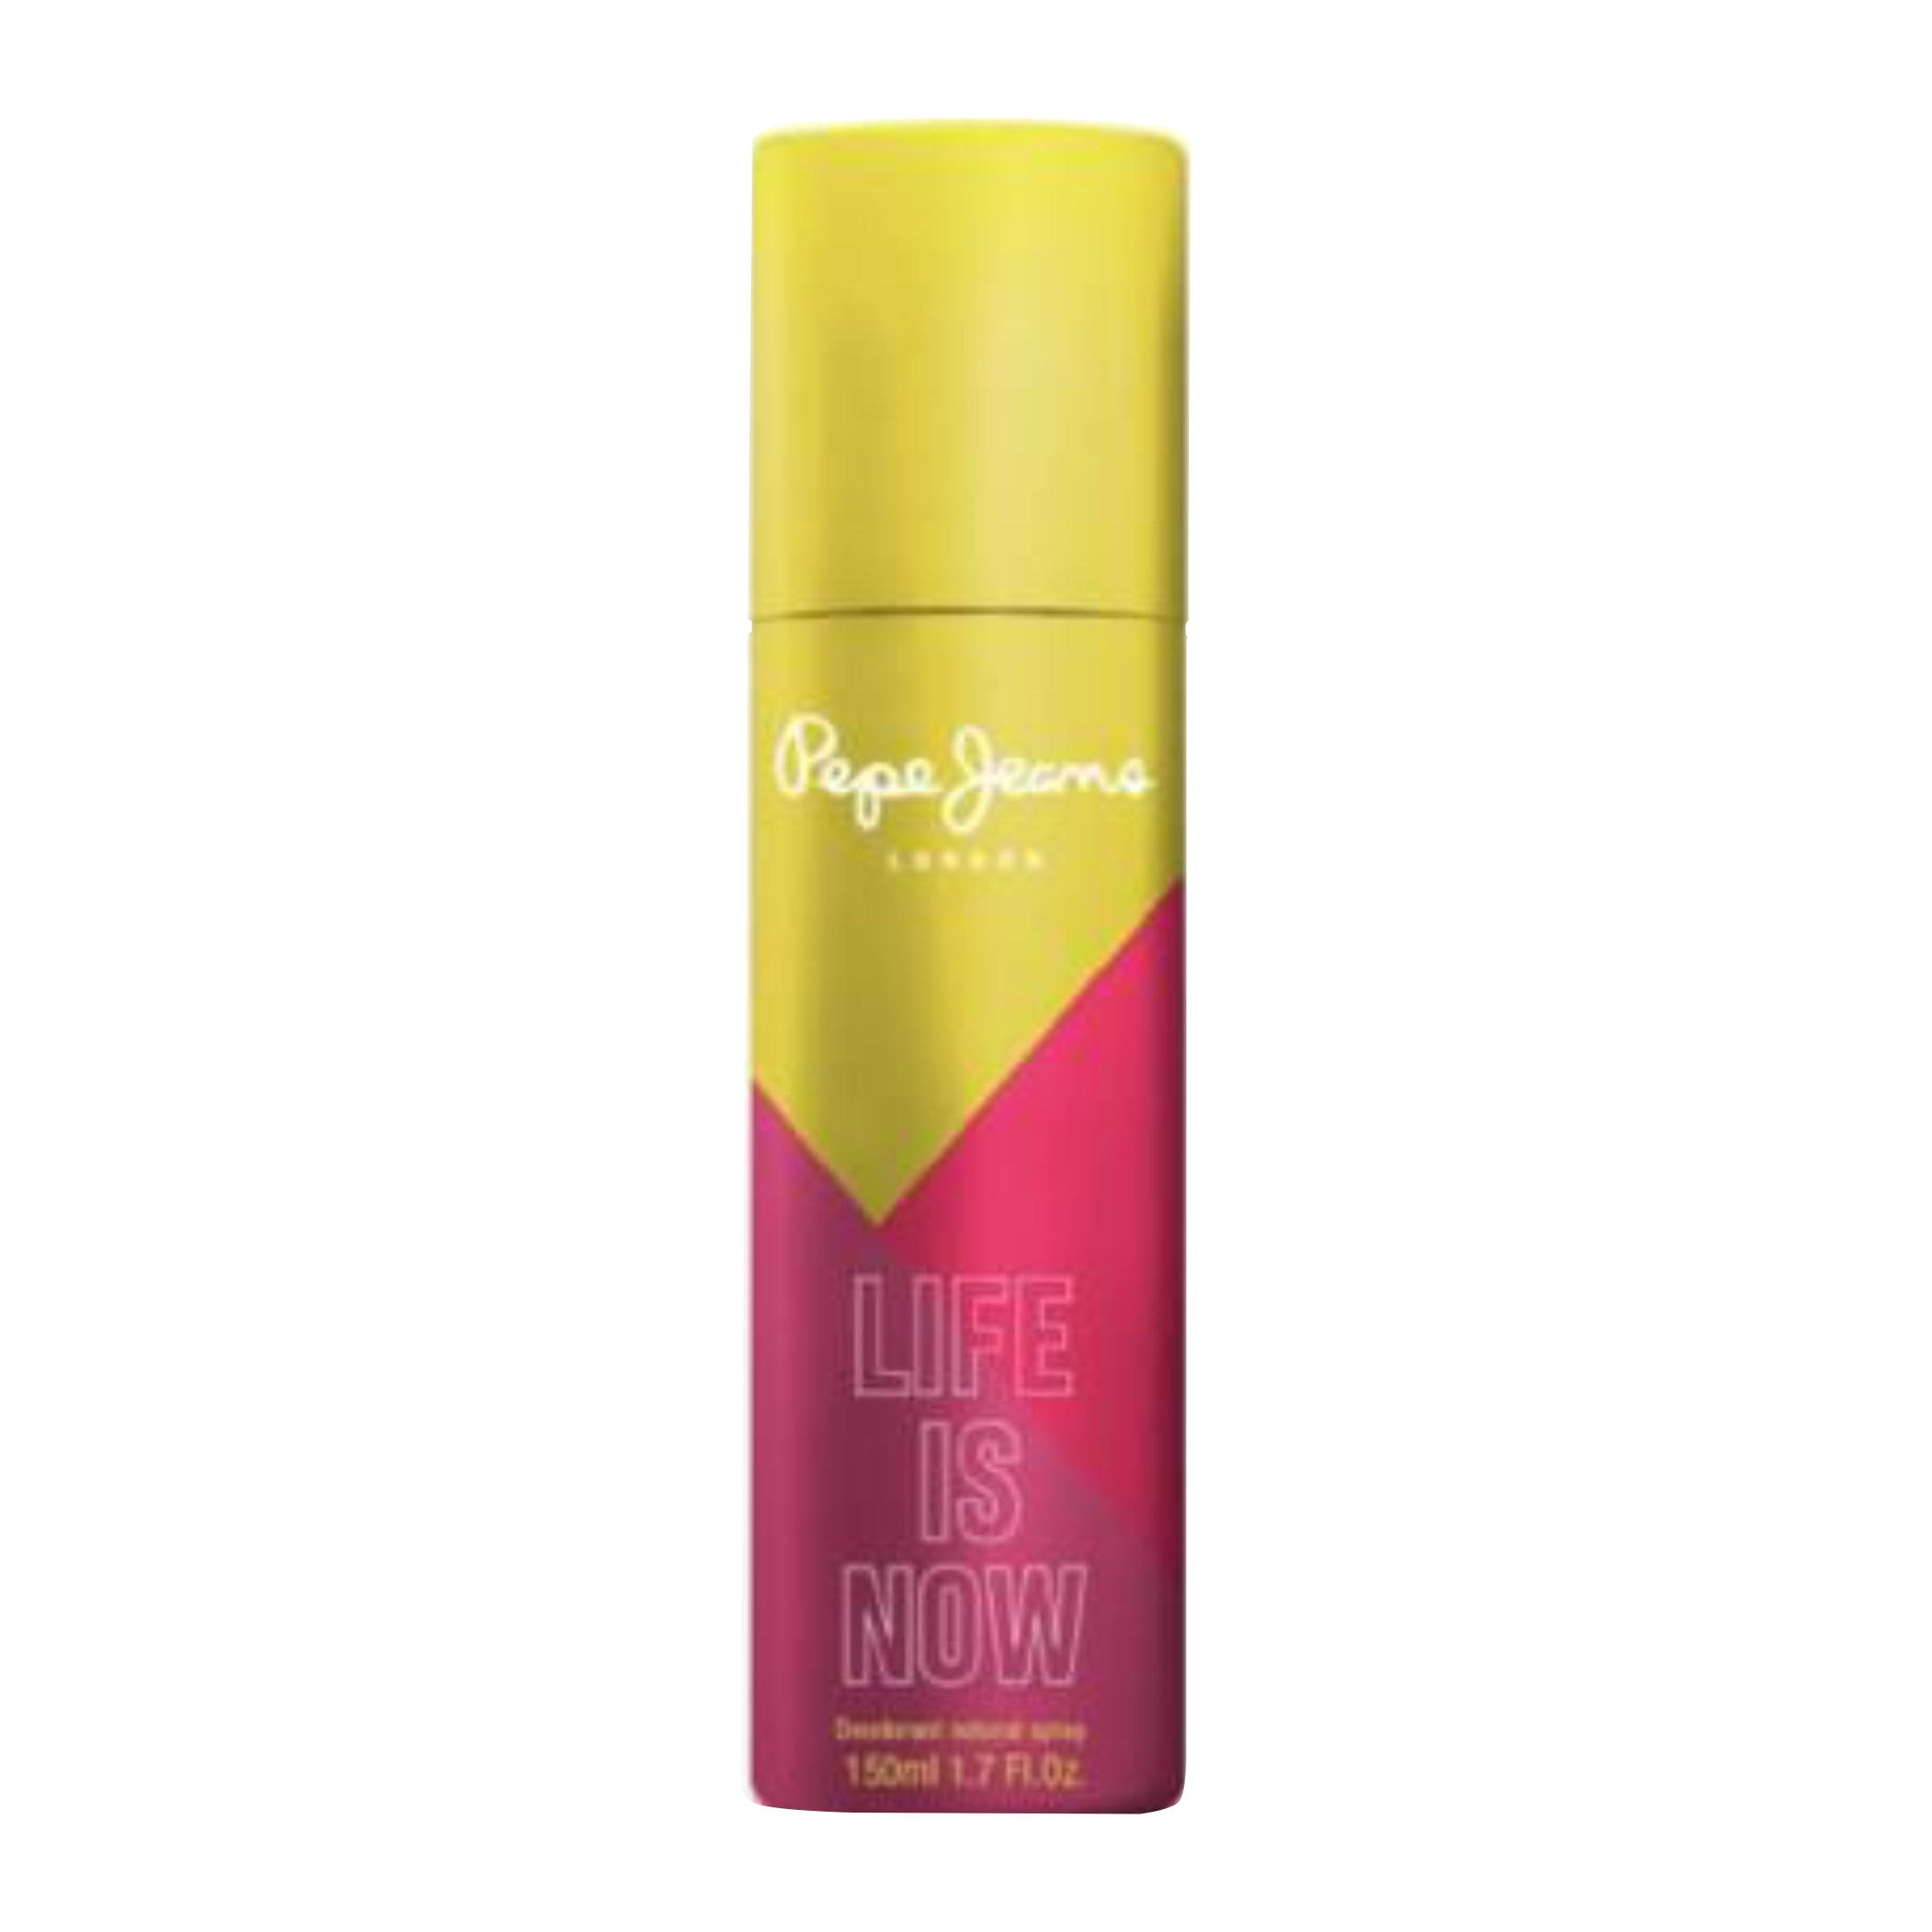 Pepe Jeans LIFE IS NOW Deodorant Spray ; For Women(150 ml)